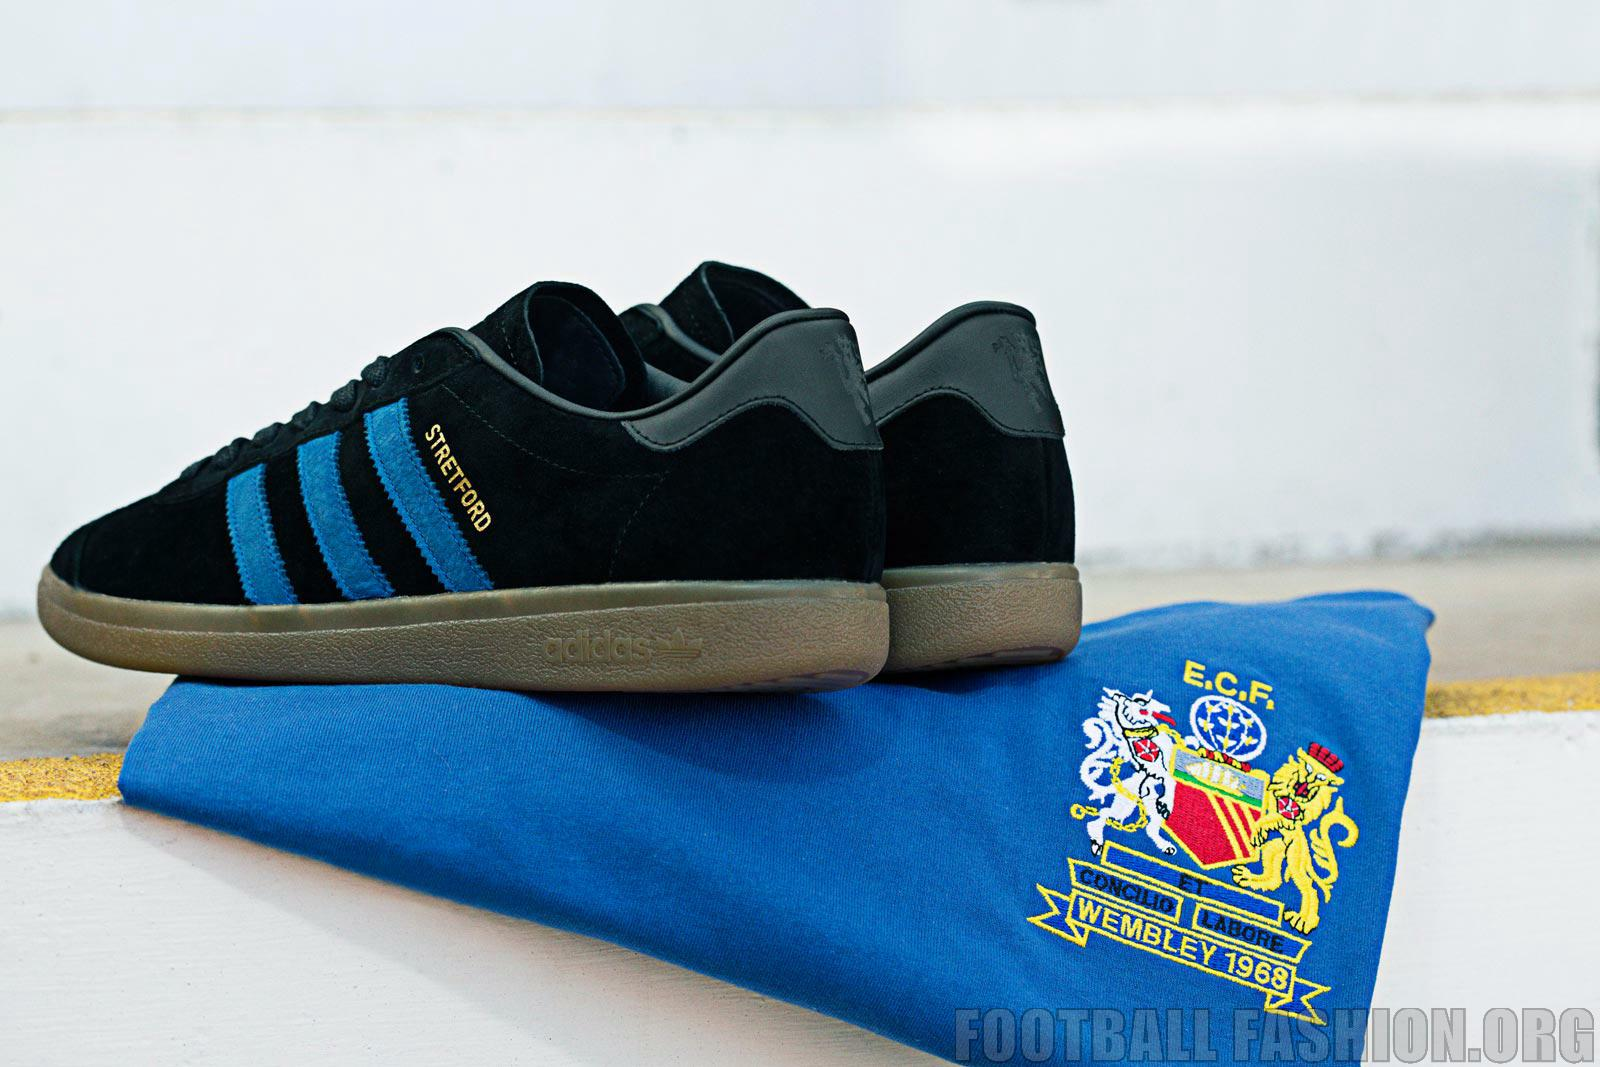 Adidas Man Utd Shoes